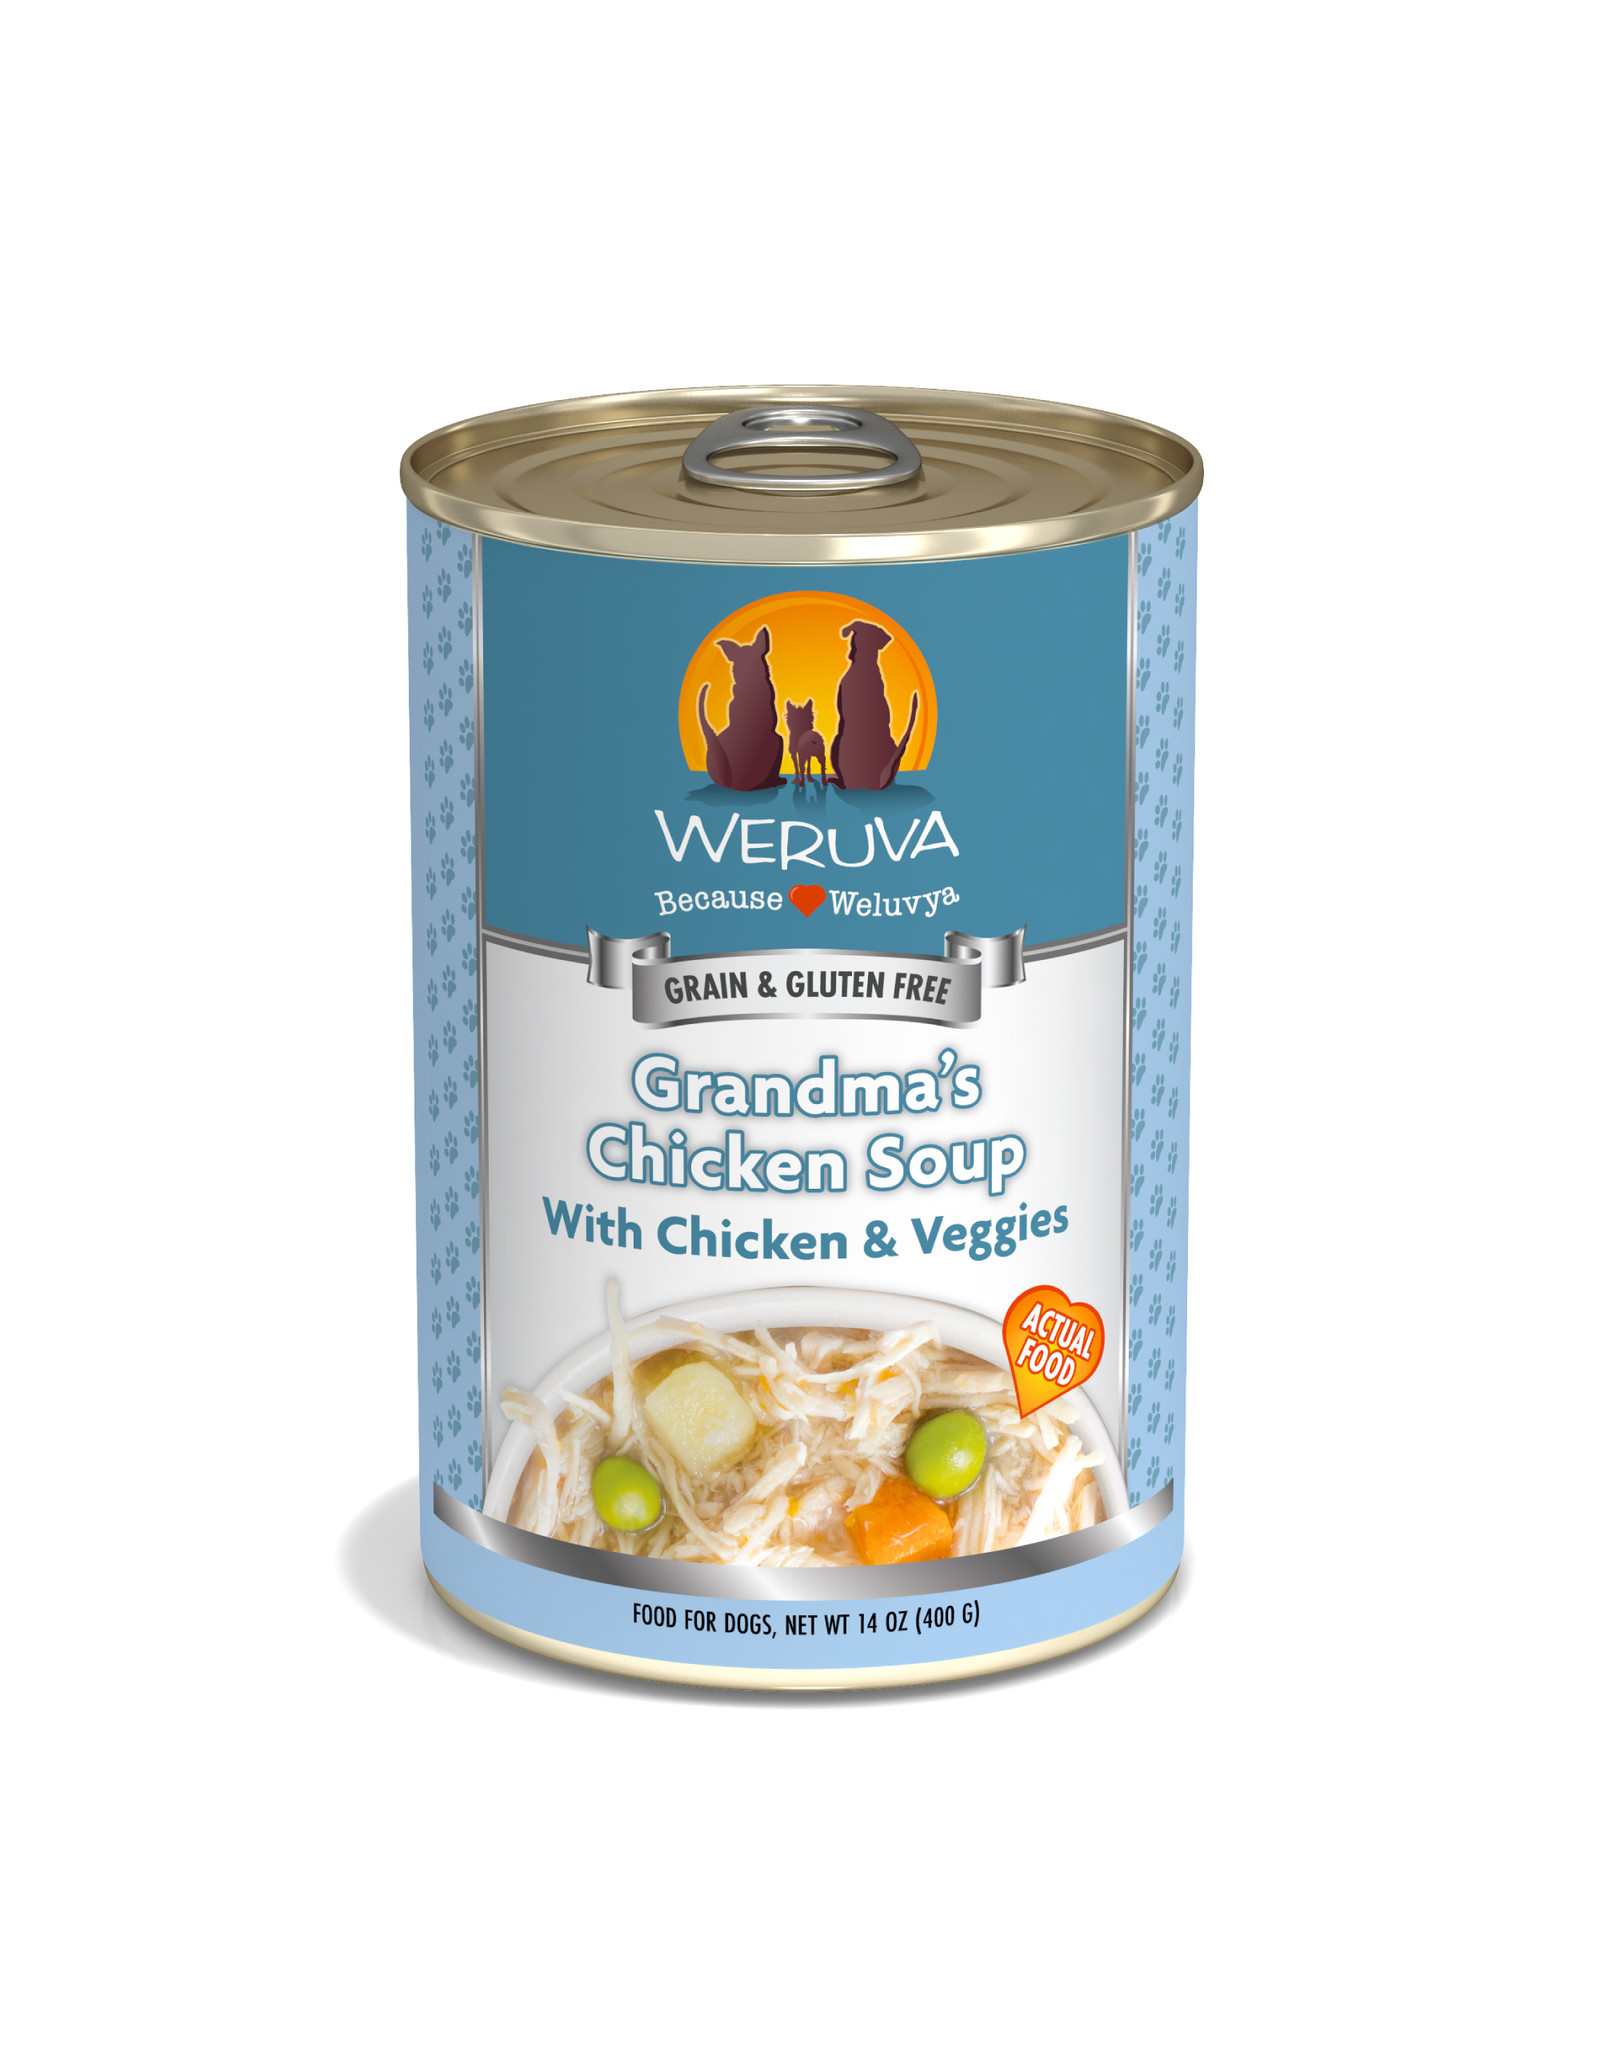 Weruva WERUVA DOG GRANDMA'S CHICKEN SOUP WITH CHICKEN & VEGGIES